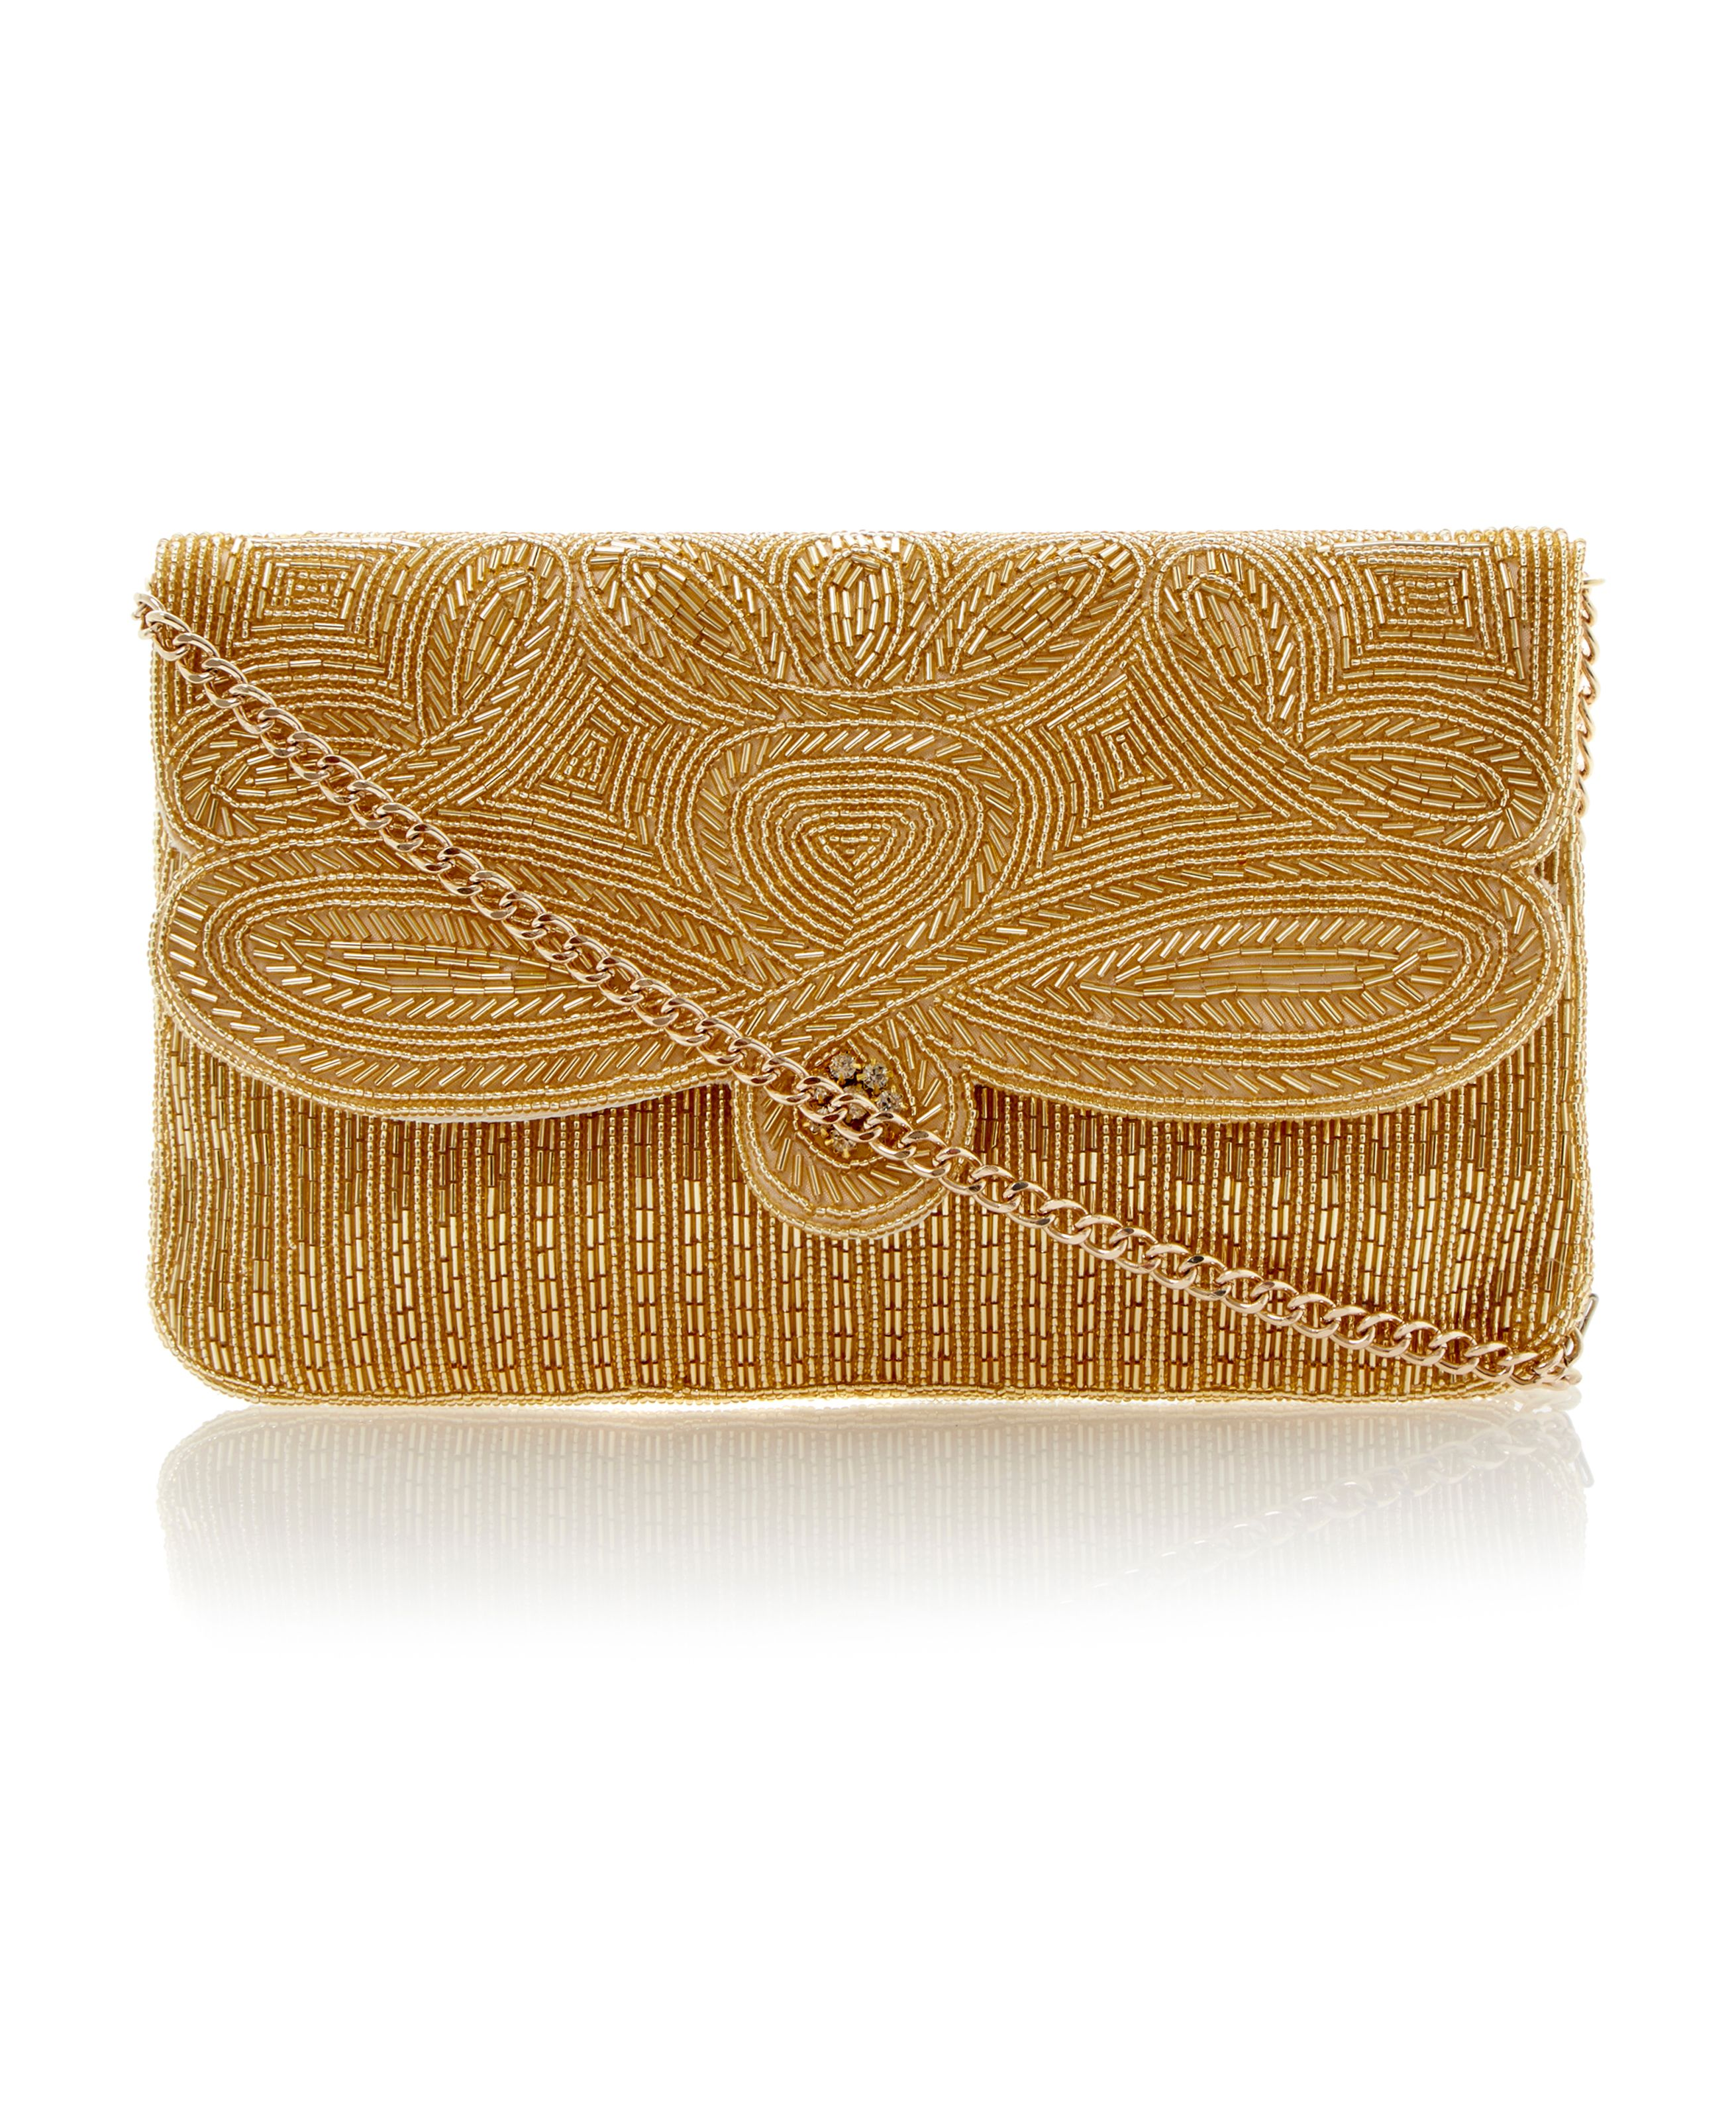 Eazie swirl beaded clutch bag